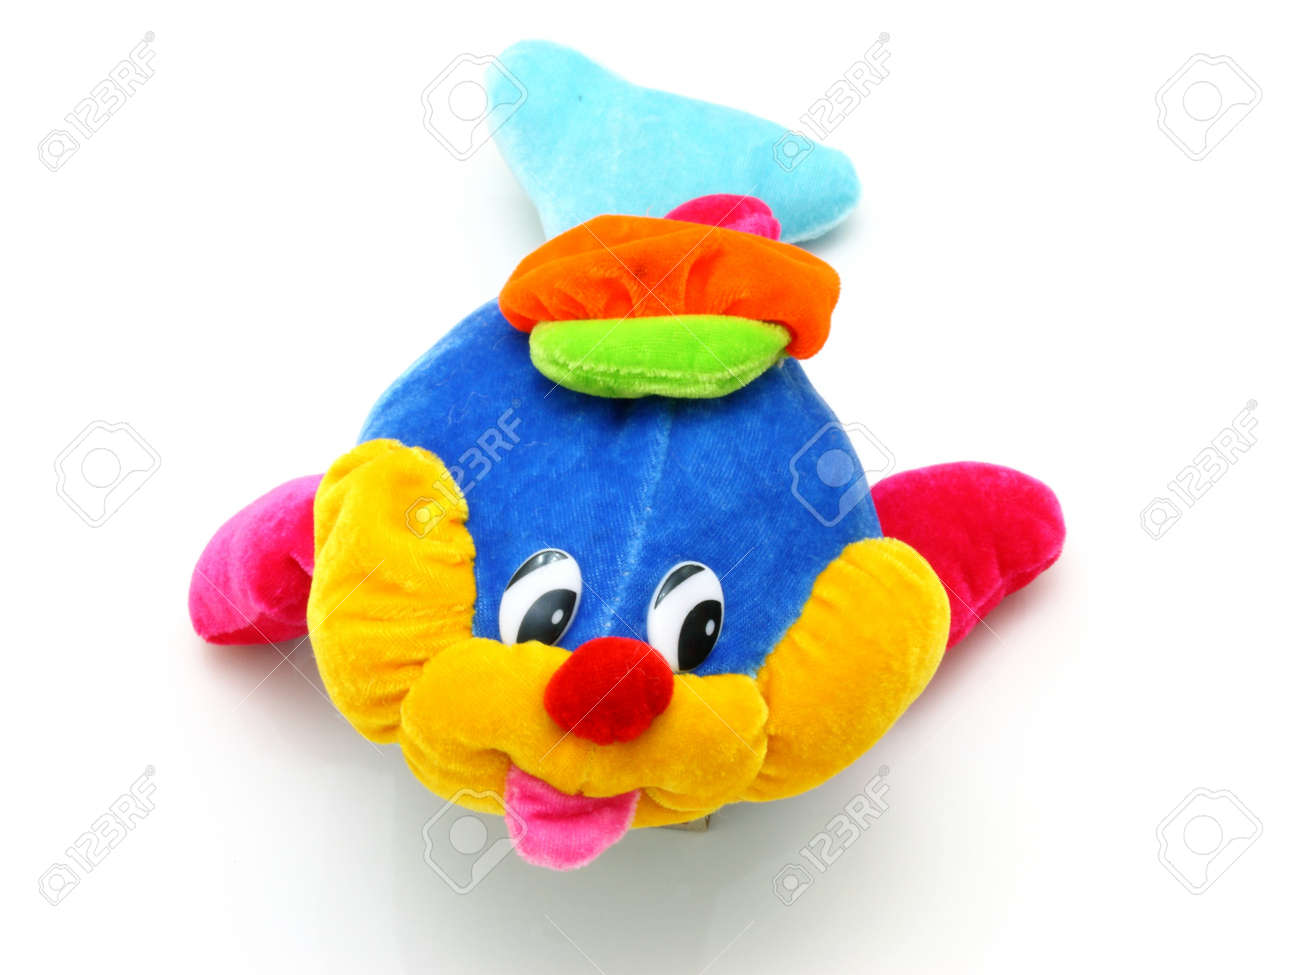 Children's bright beautiful soft toy for the child on a white background Stock Photo - 8079771